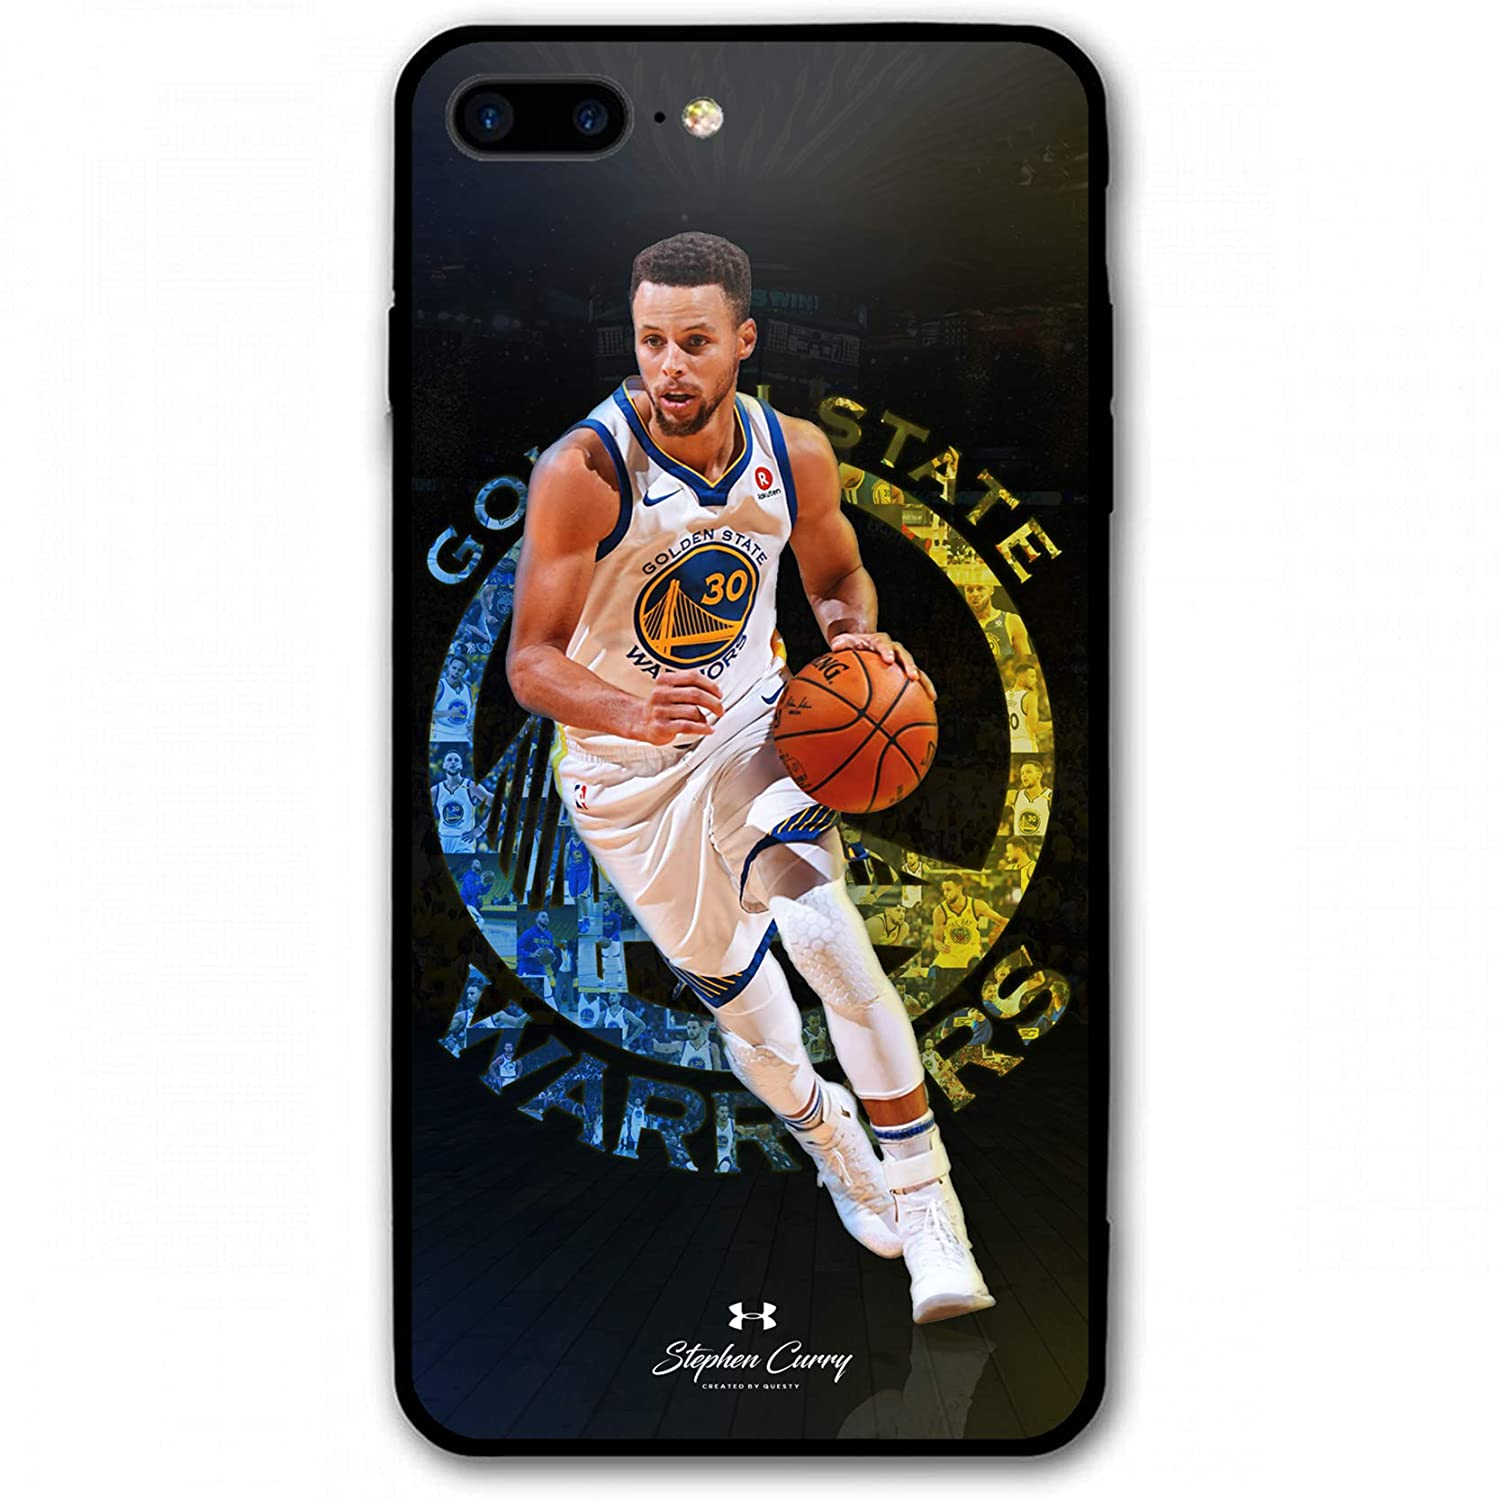 best service bab5d b31e7 iPhone 8 Plus Case,iPhone 7 Plus Case,Golden State Curry Fashion Protective  Shockproof Anti-Scratch Soft Bumper Case for iPhone 7/8 Plus (Golden State  ...